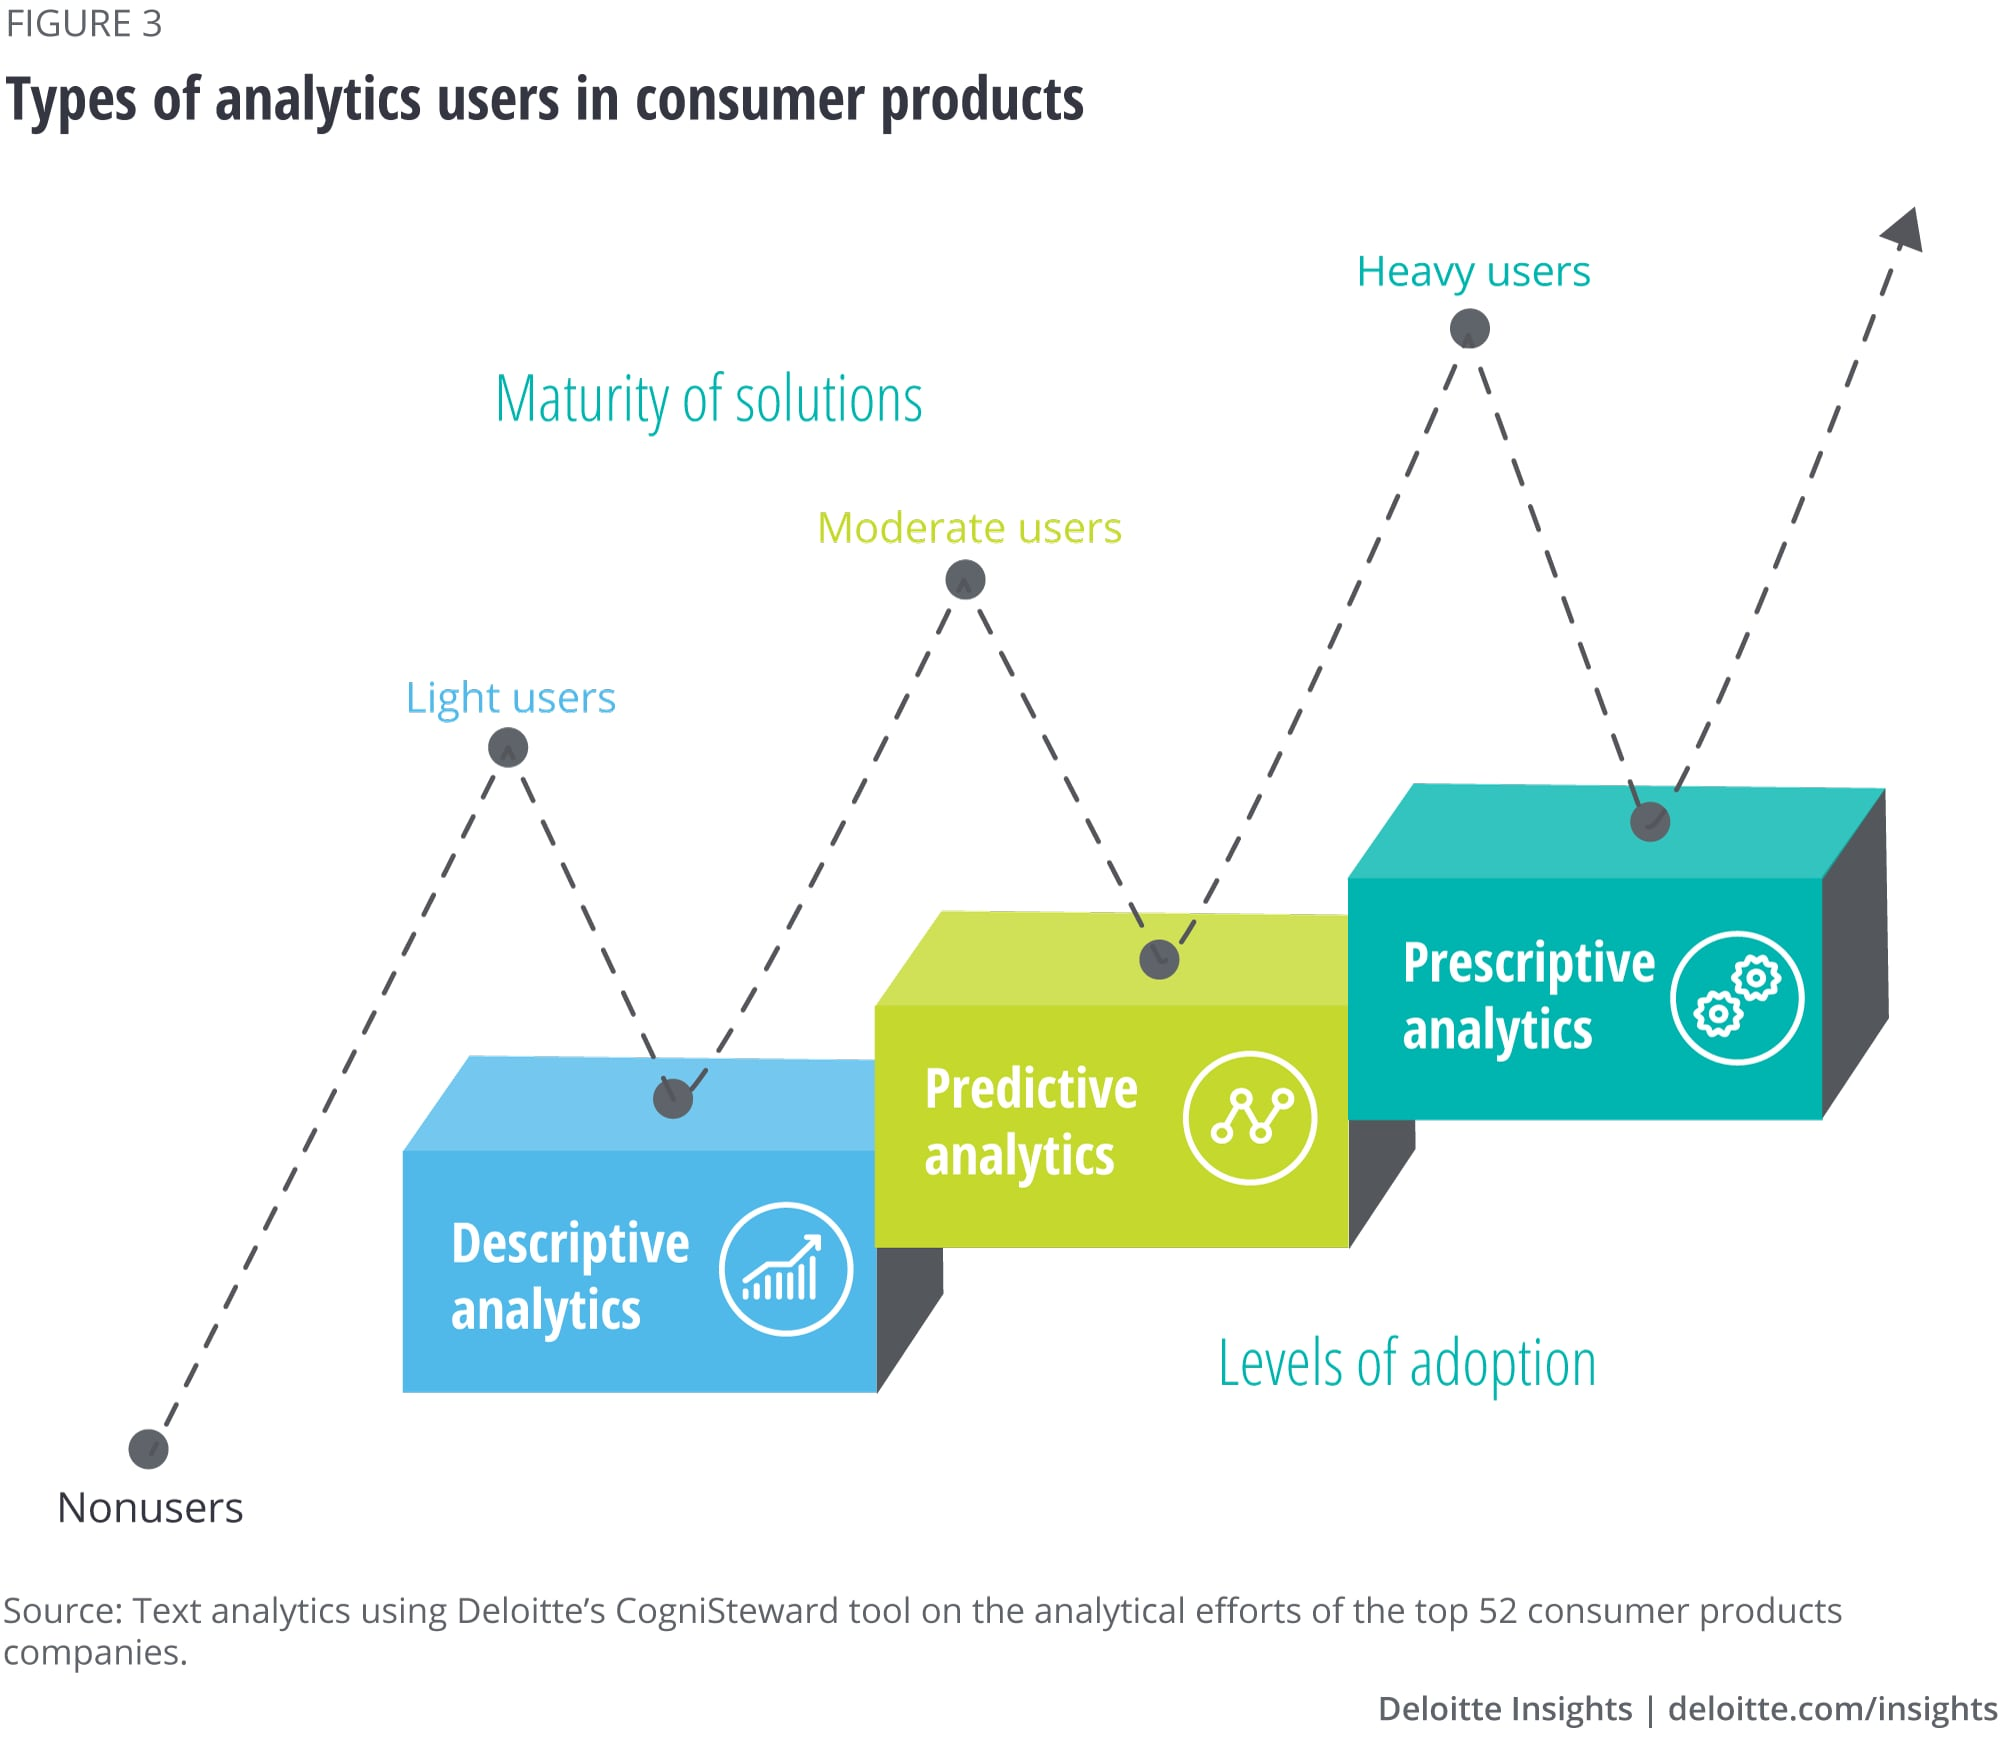 Types of analytics users in consumer products